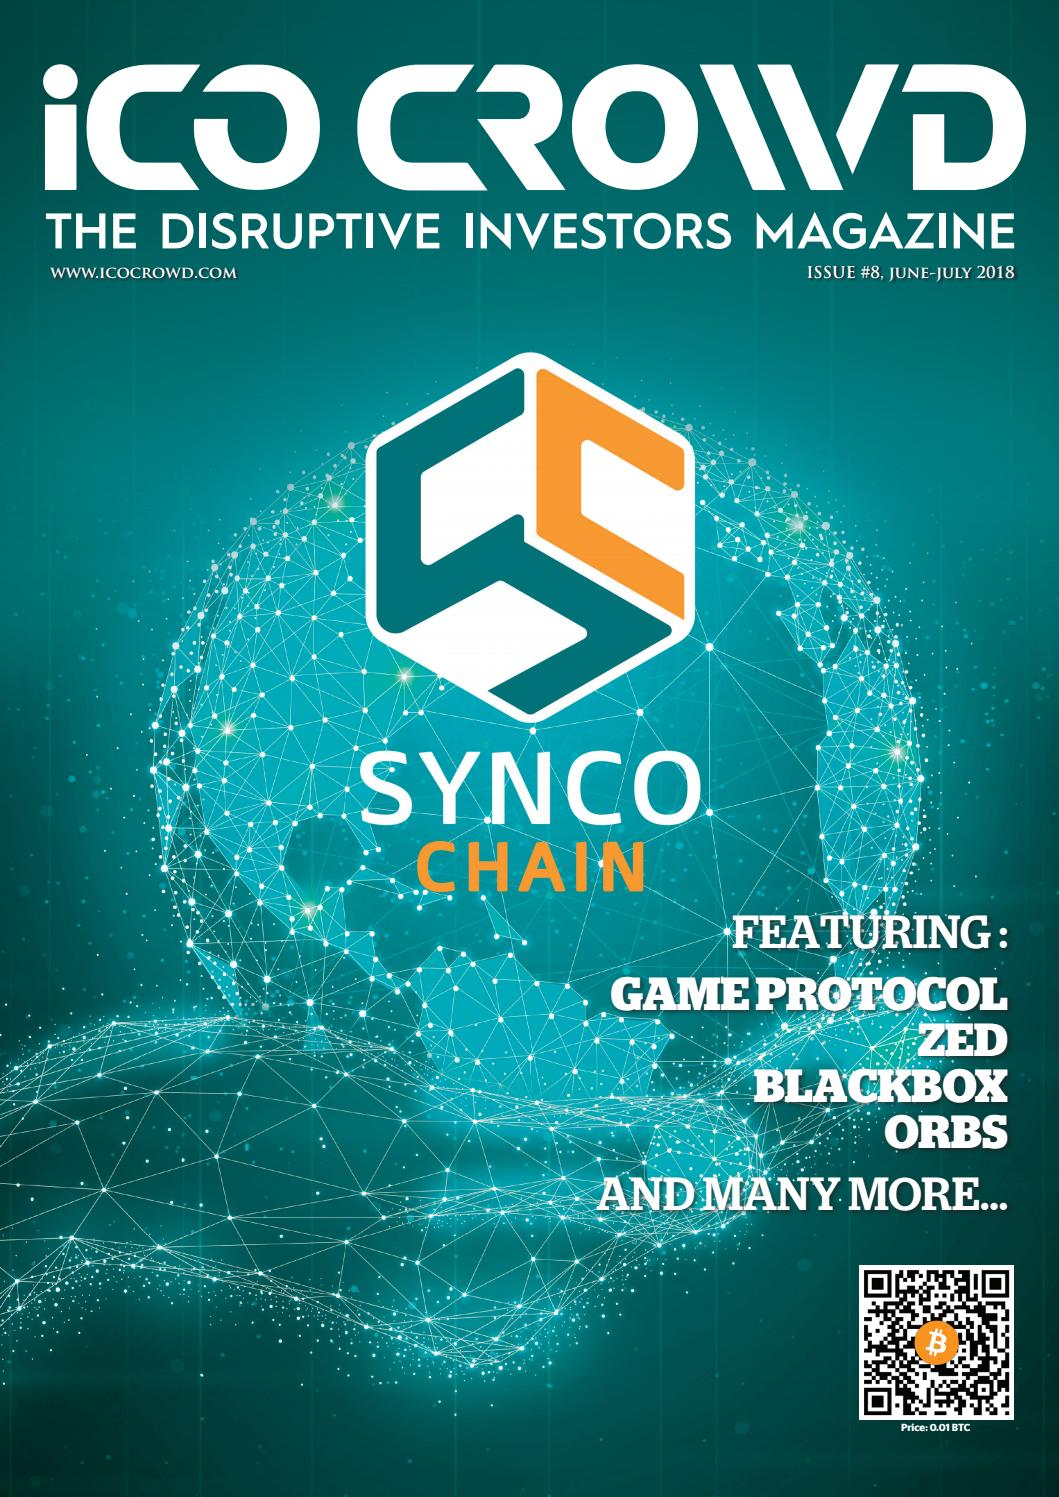 ICO CROWD ISSUE 8 by Ico Crowd - issuu